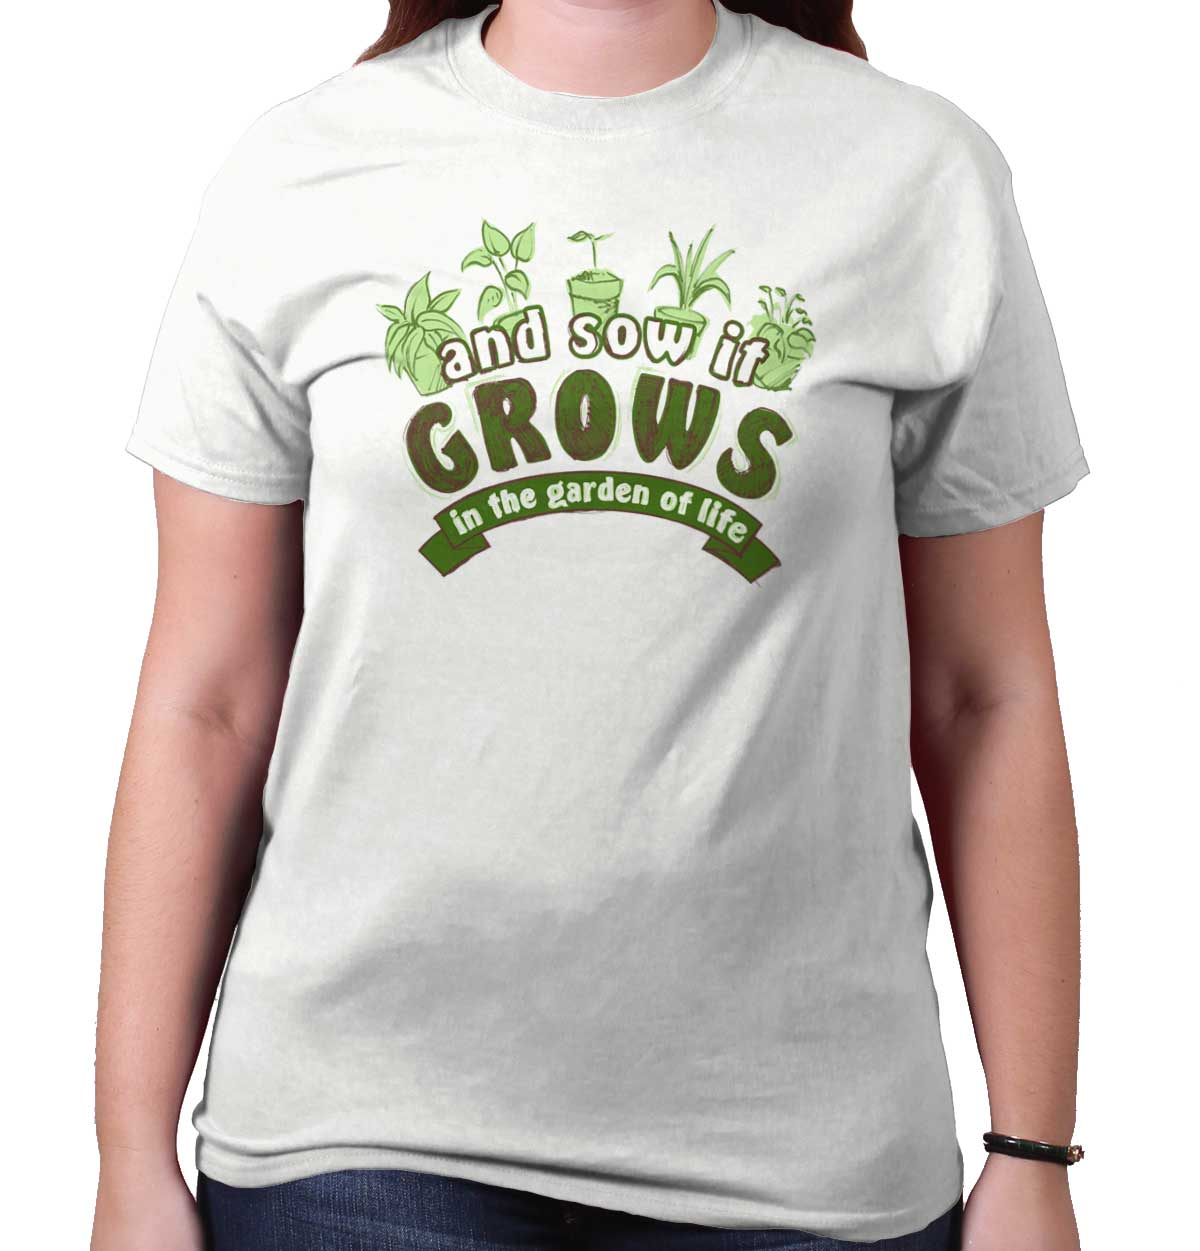 Sow it Grow Garden of Life Funny Shirt | Home Gardening Tools T-Shirt Tee